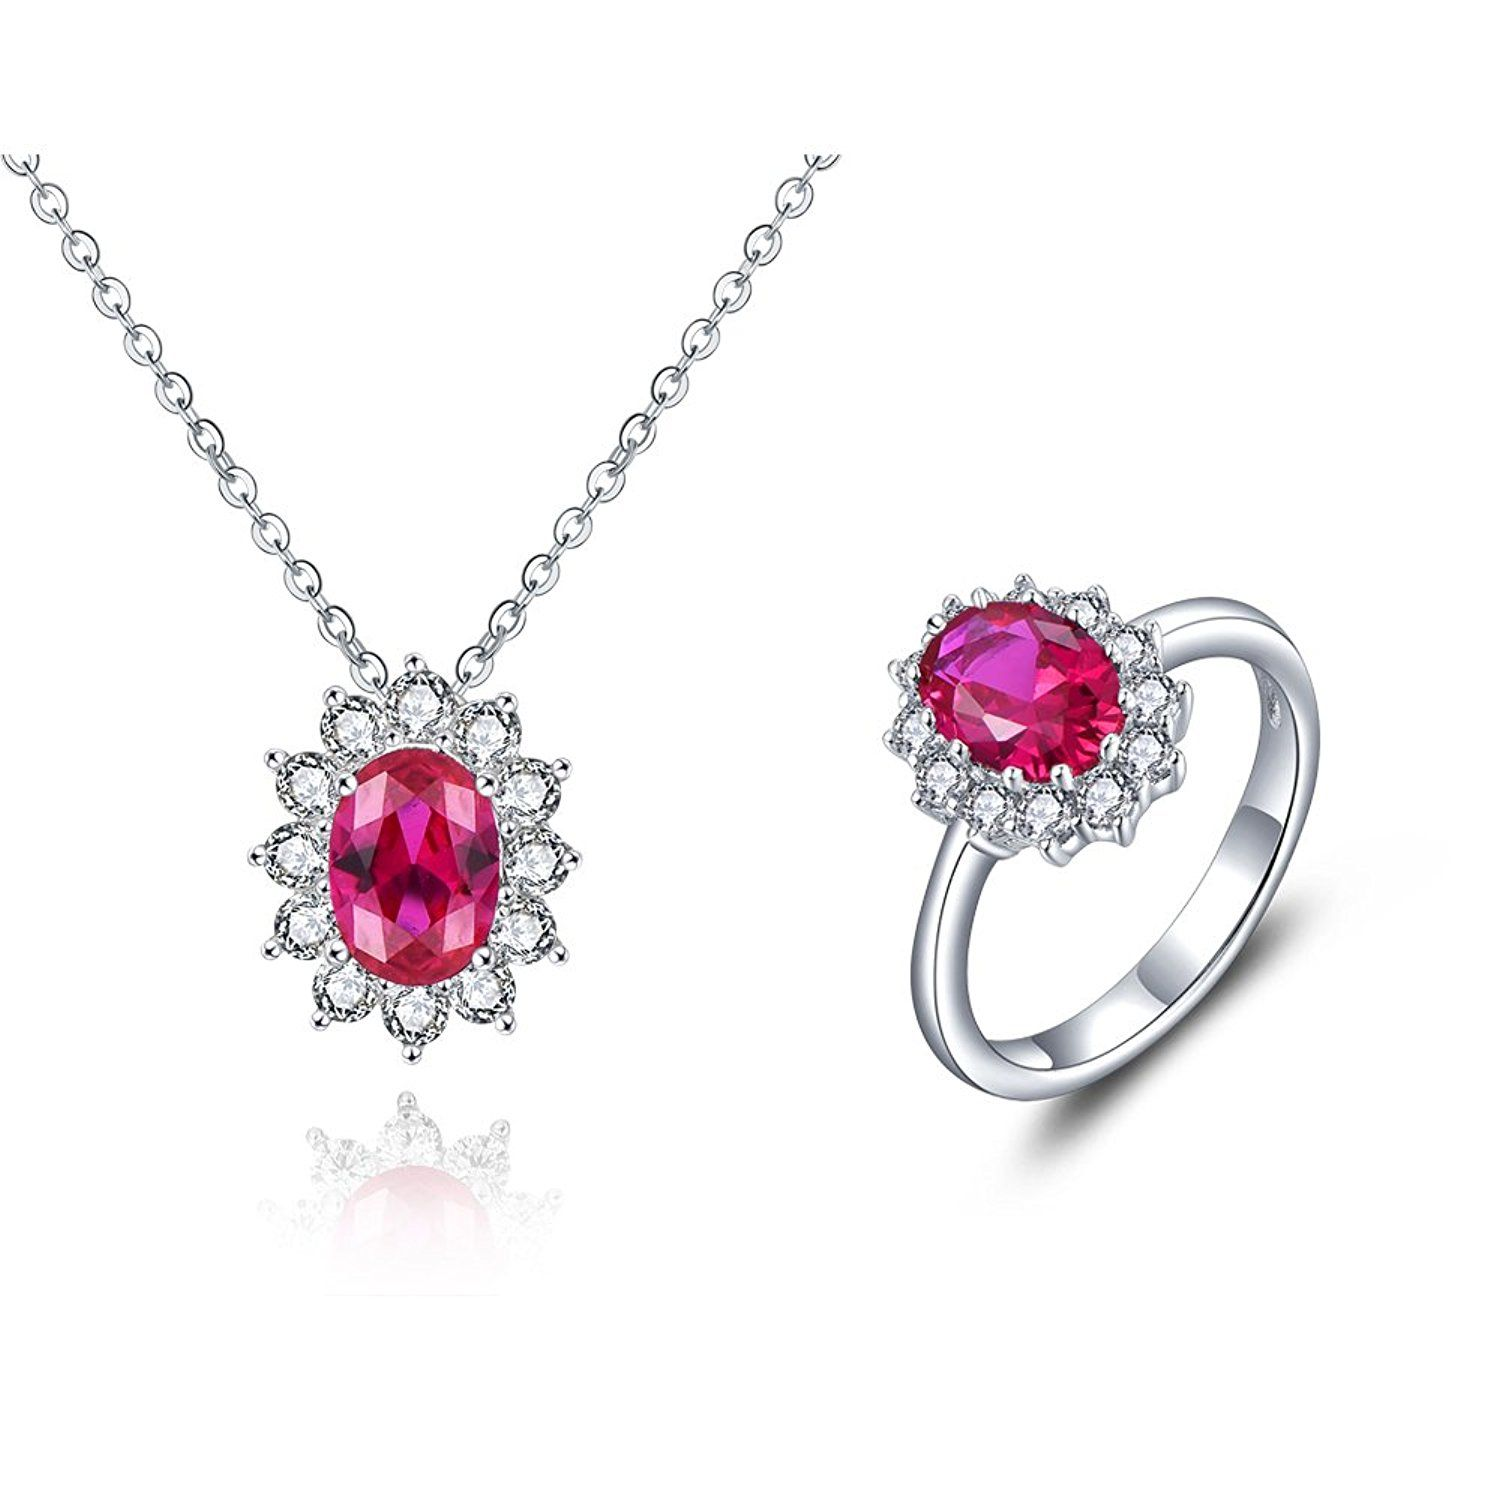 Yl sterling silver created ruby cubic zirconia jewelry set including